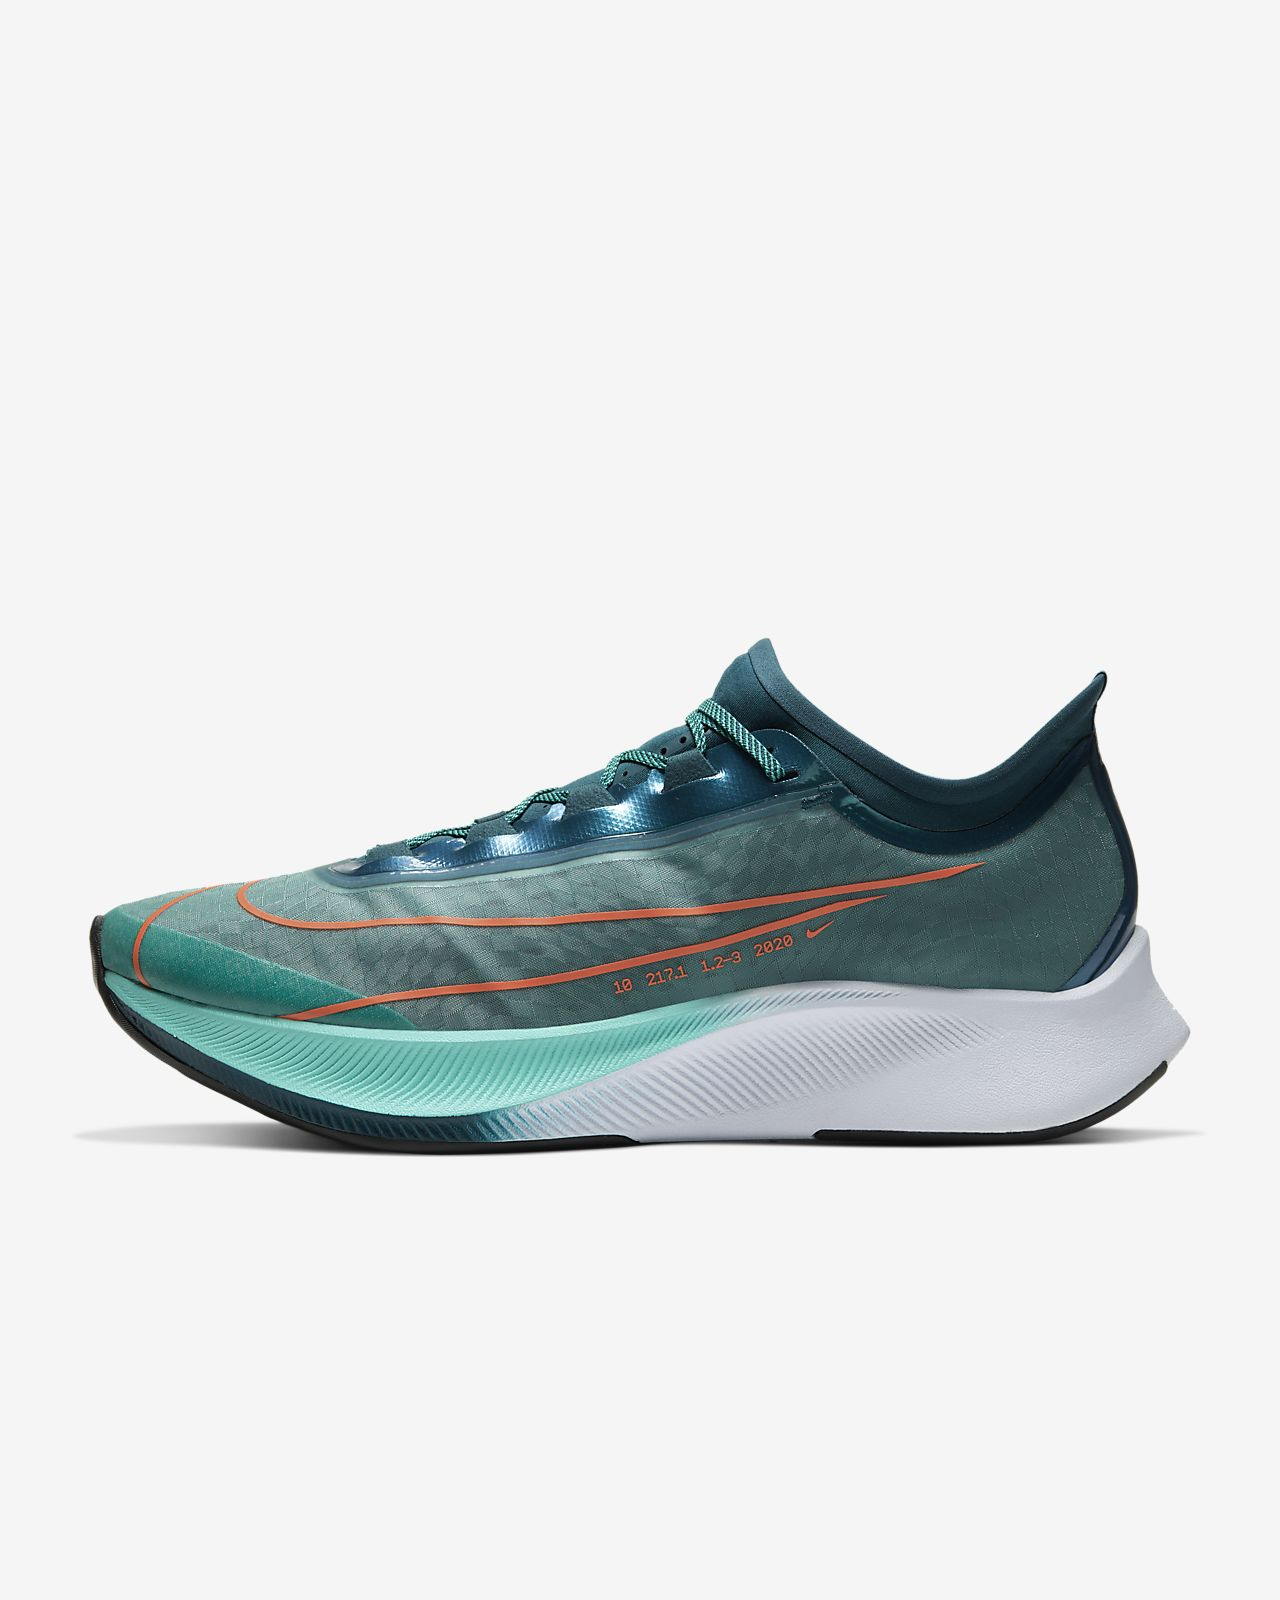 Nike Zoom Fly3 Mens Blue Running Shoes | Online Sale